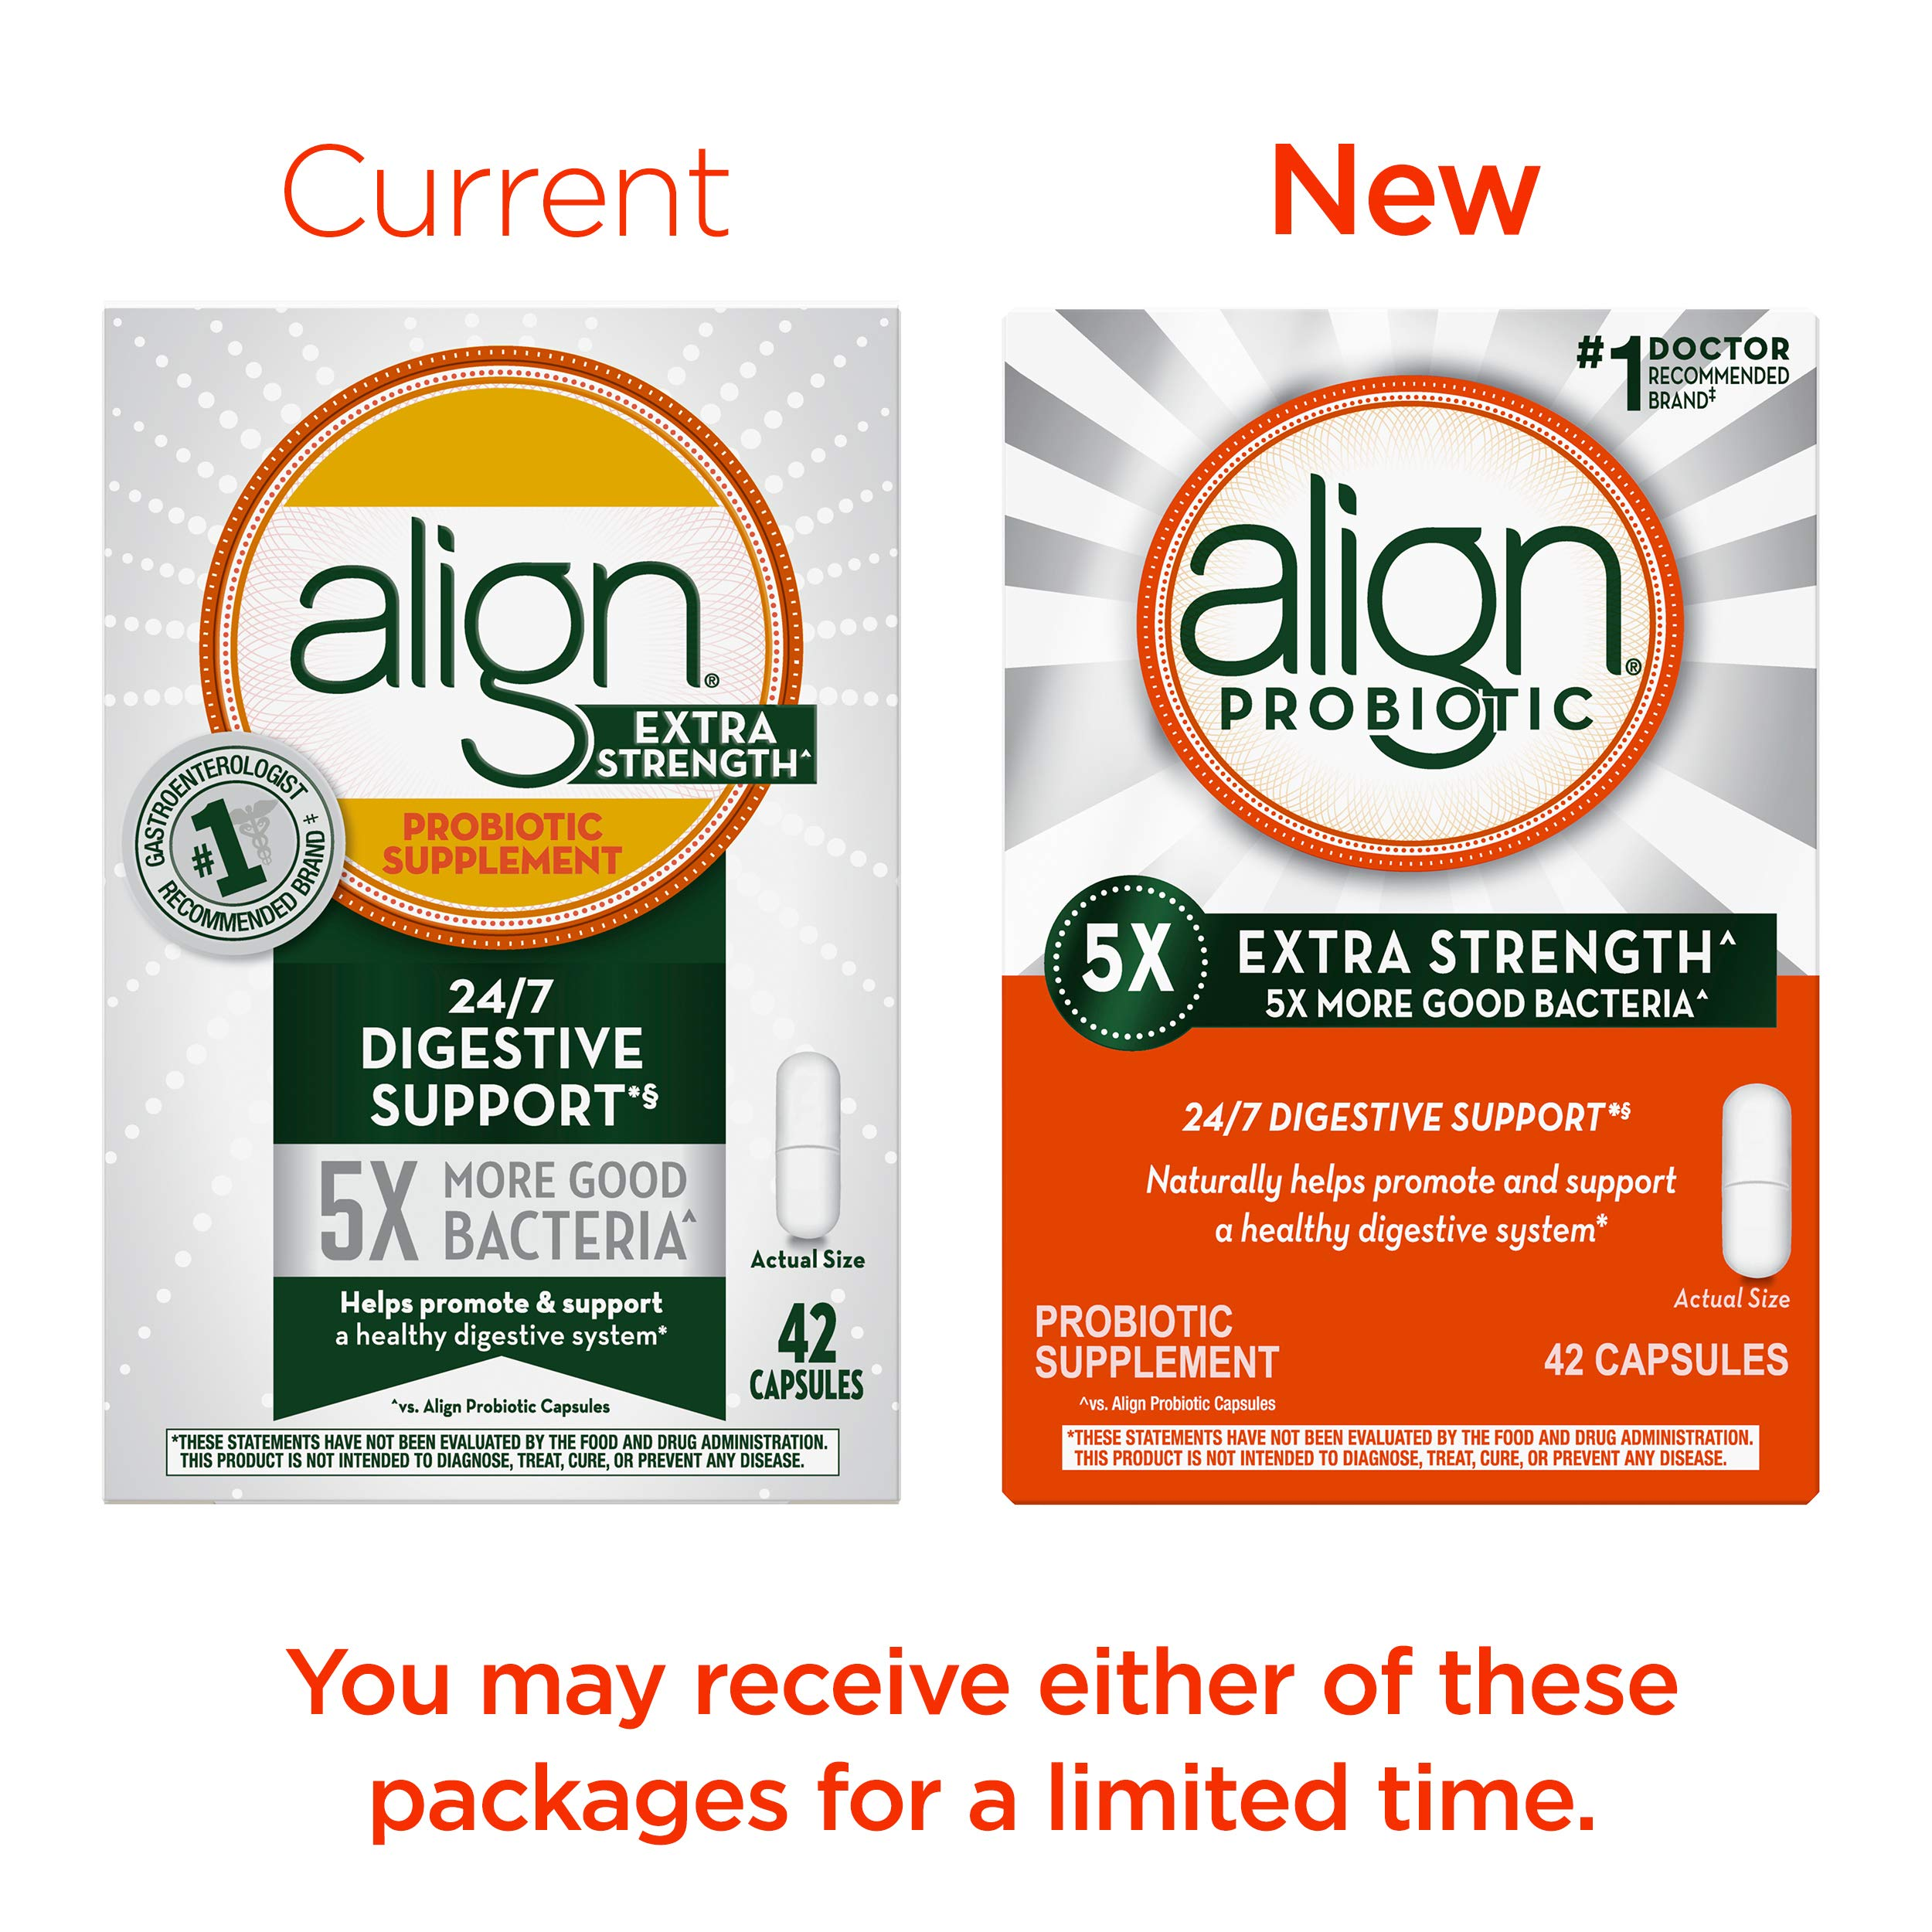 Align Extra Strength Probiotic, Probiotic Supplement for Digestive Health in Men and Women, 42 capsules, #1 Doctor Recommended Probiotics Brand(Packaging May Vary) by Align (Image #2)